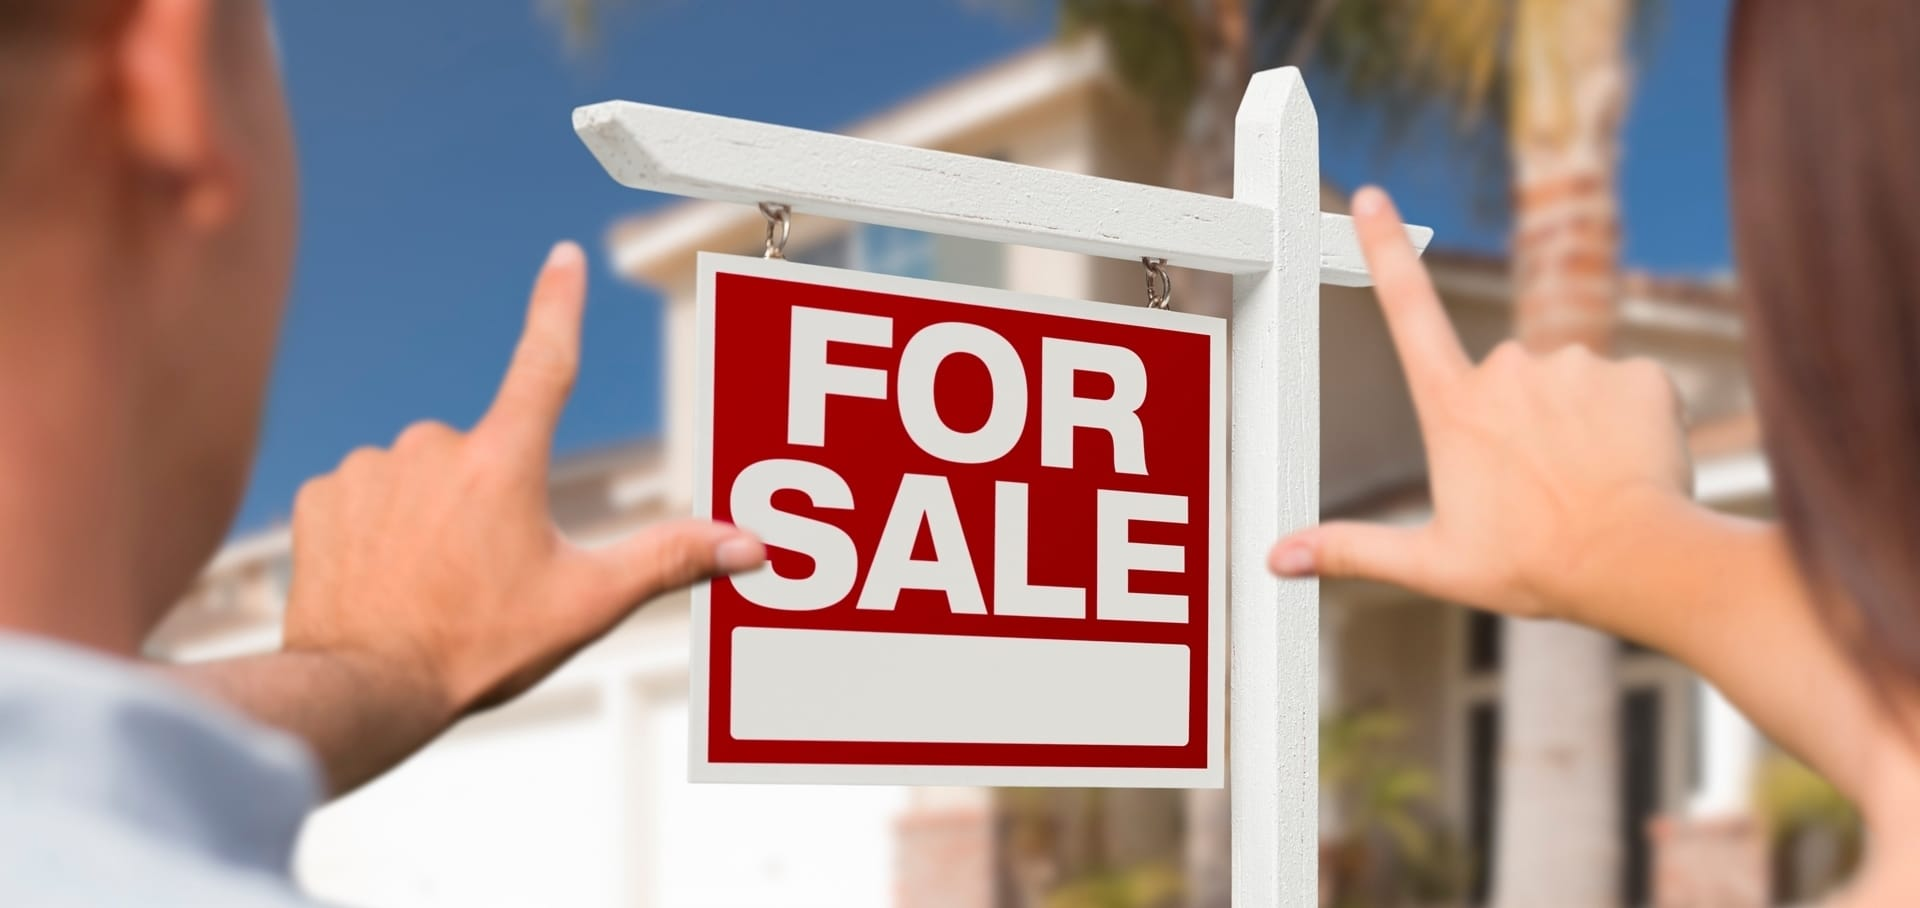 Pros and Cons of Listing Your Home For Sale During the COVID outbreak